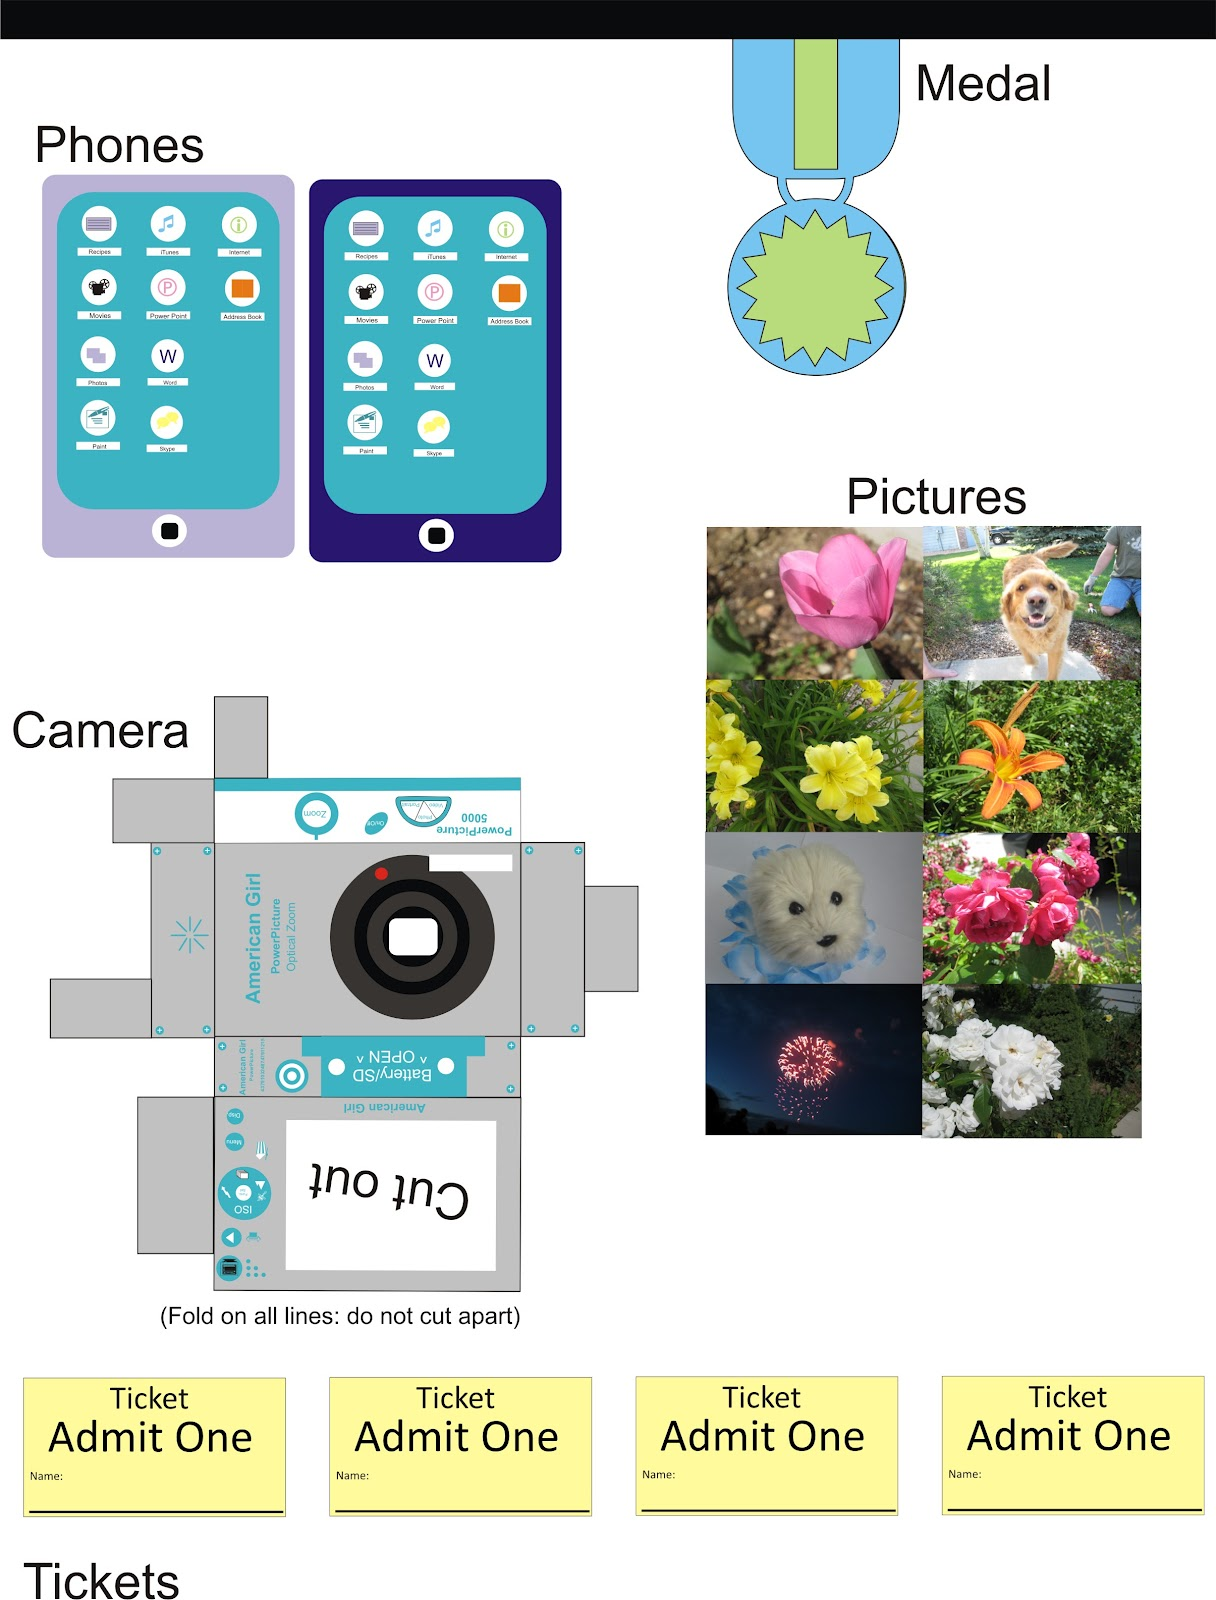 photograph about American Girl Doll Iphone Printable referred to as Absolutely free down load American Female Doll Printables Laptop or computer Android